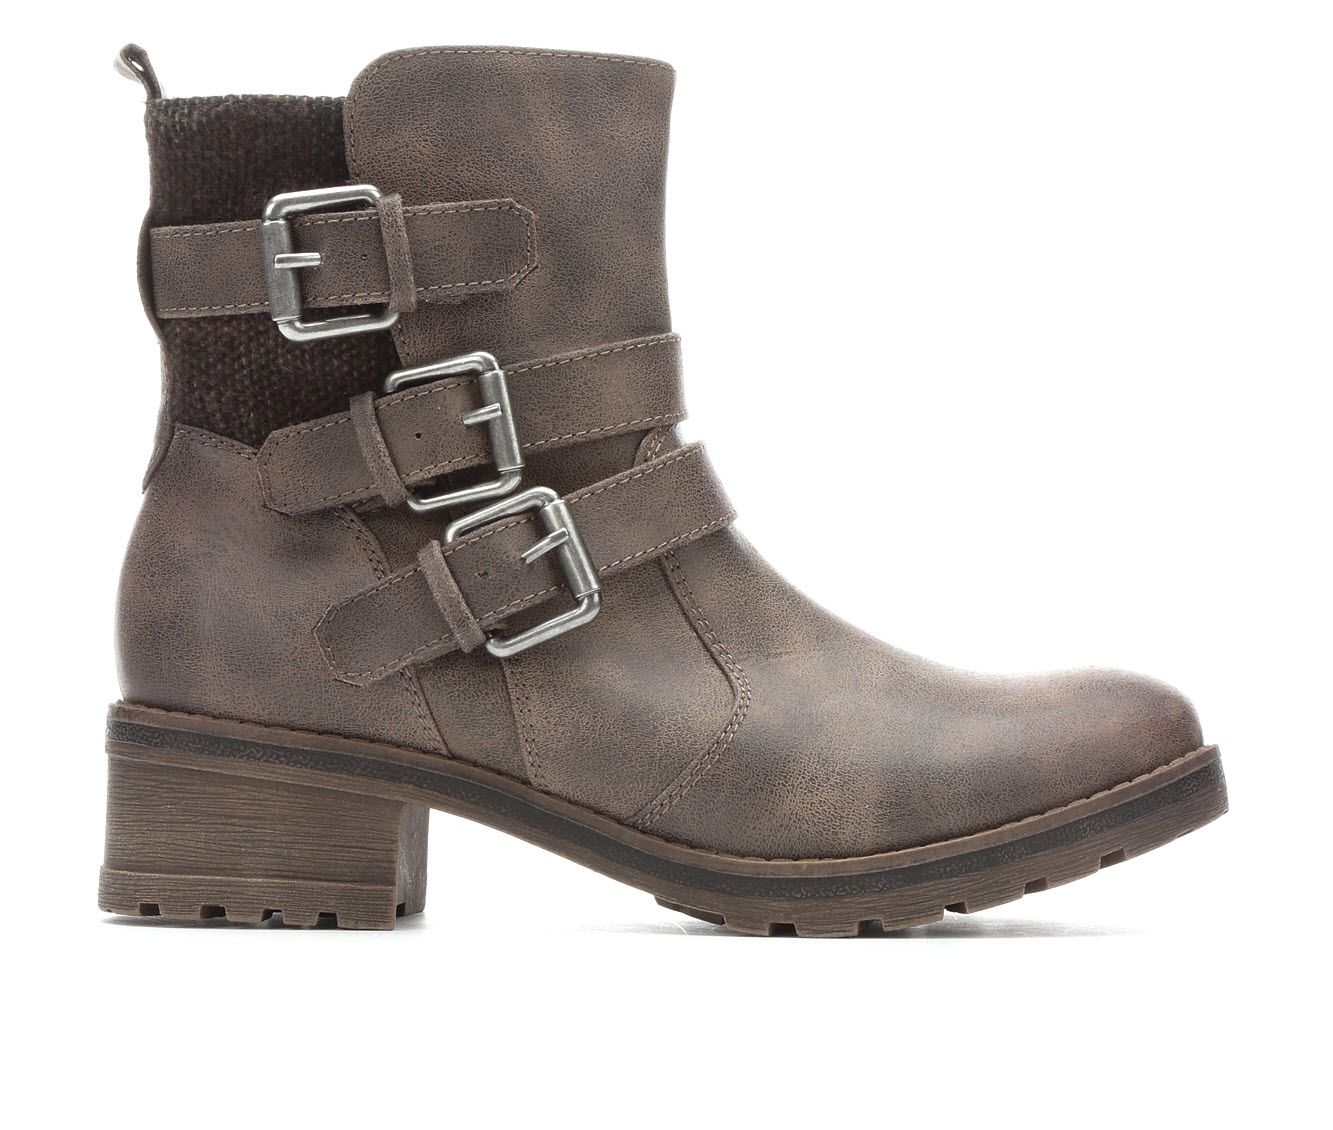 White Mountain Clover Women's Boots (Gray - Faux Leather)